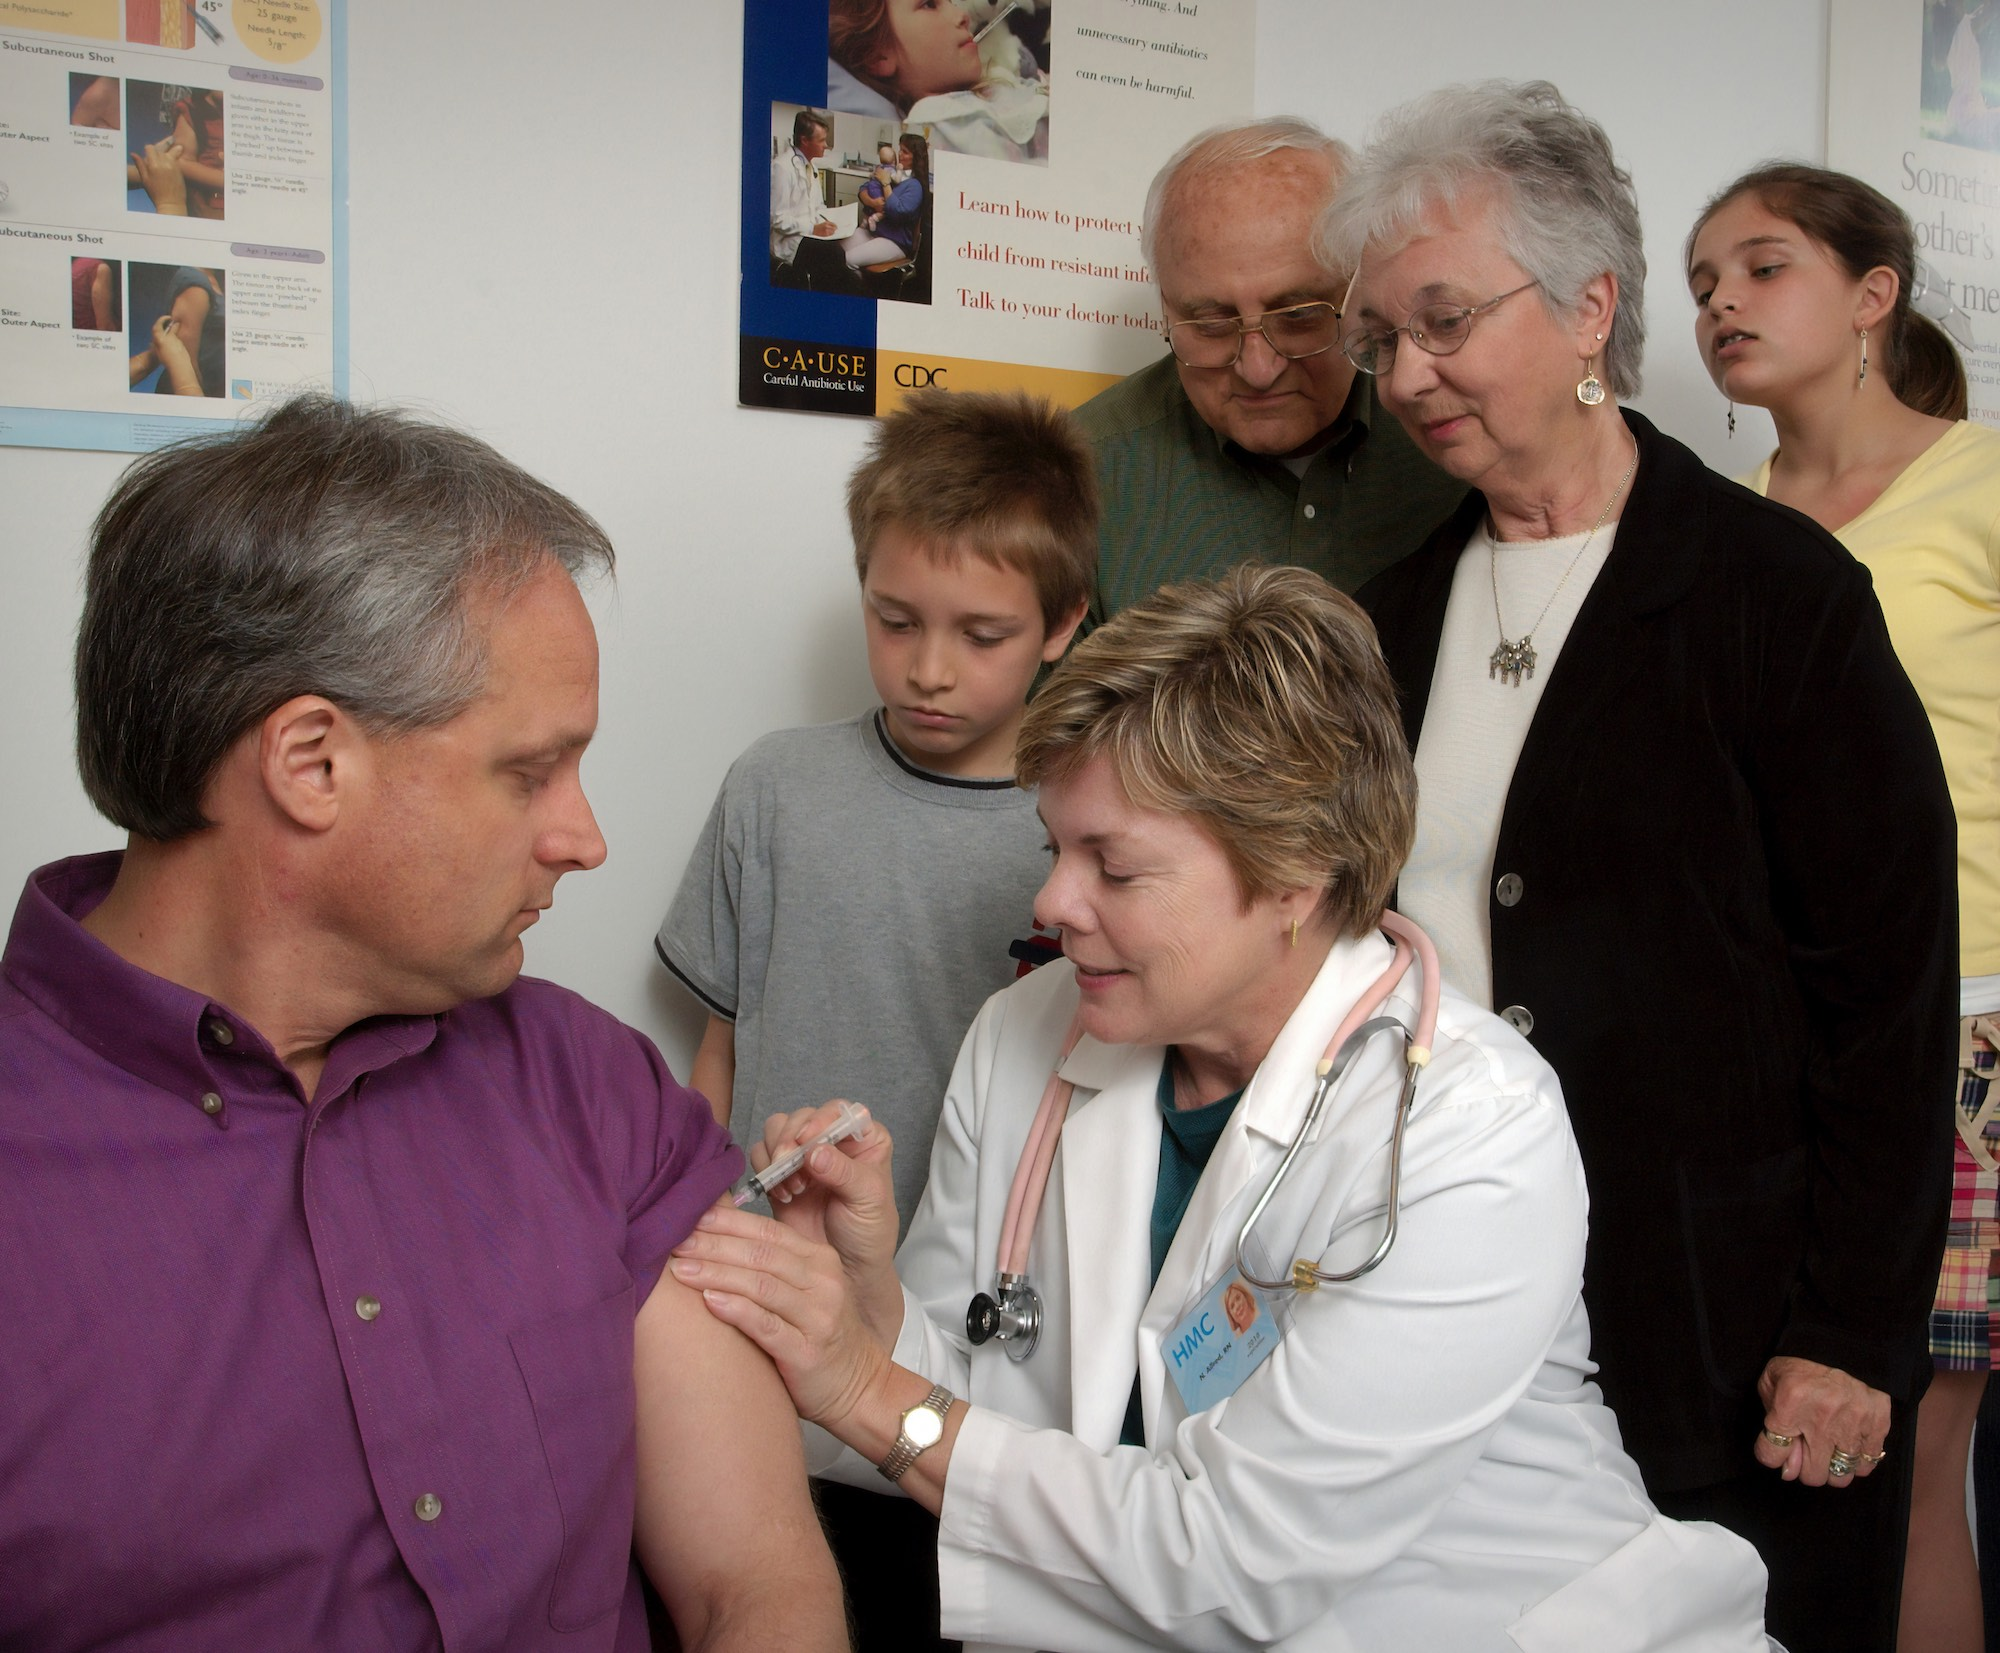 a woman giving a vaccine to a man while 4 other people look on